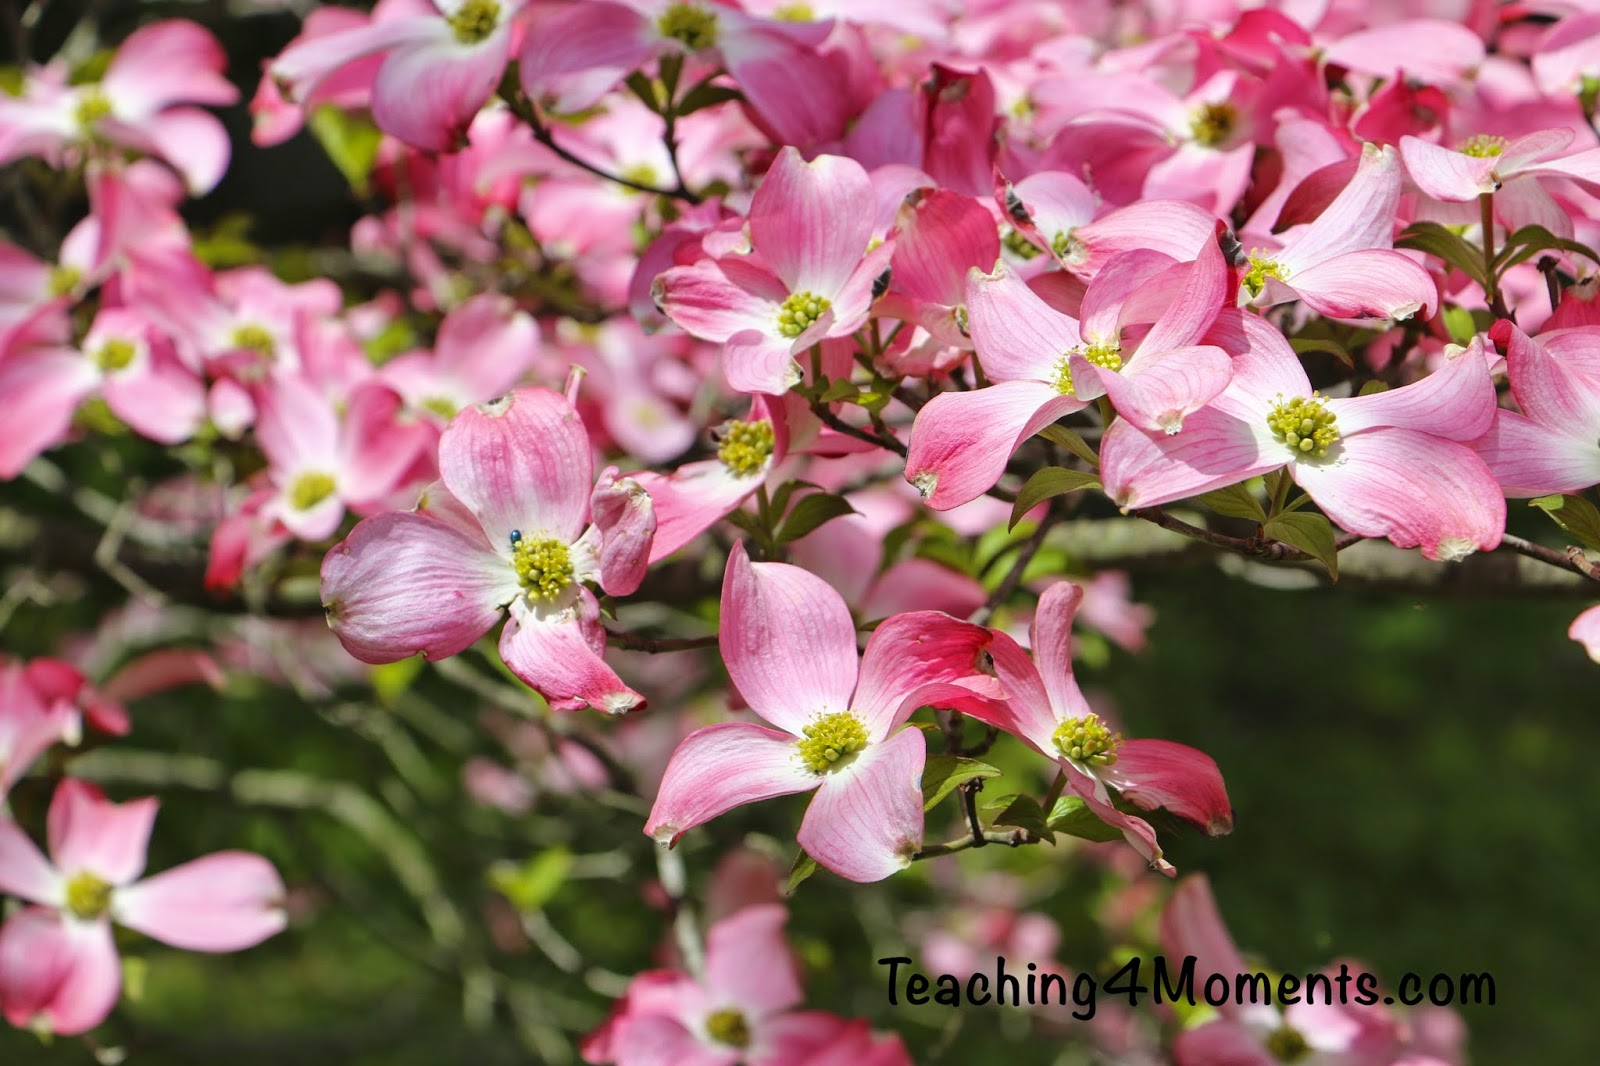 Teaching 4 Moments-Pink Flowering Dogwood